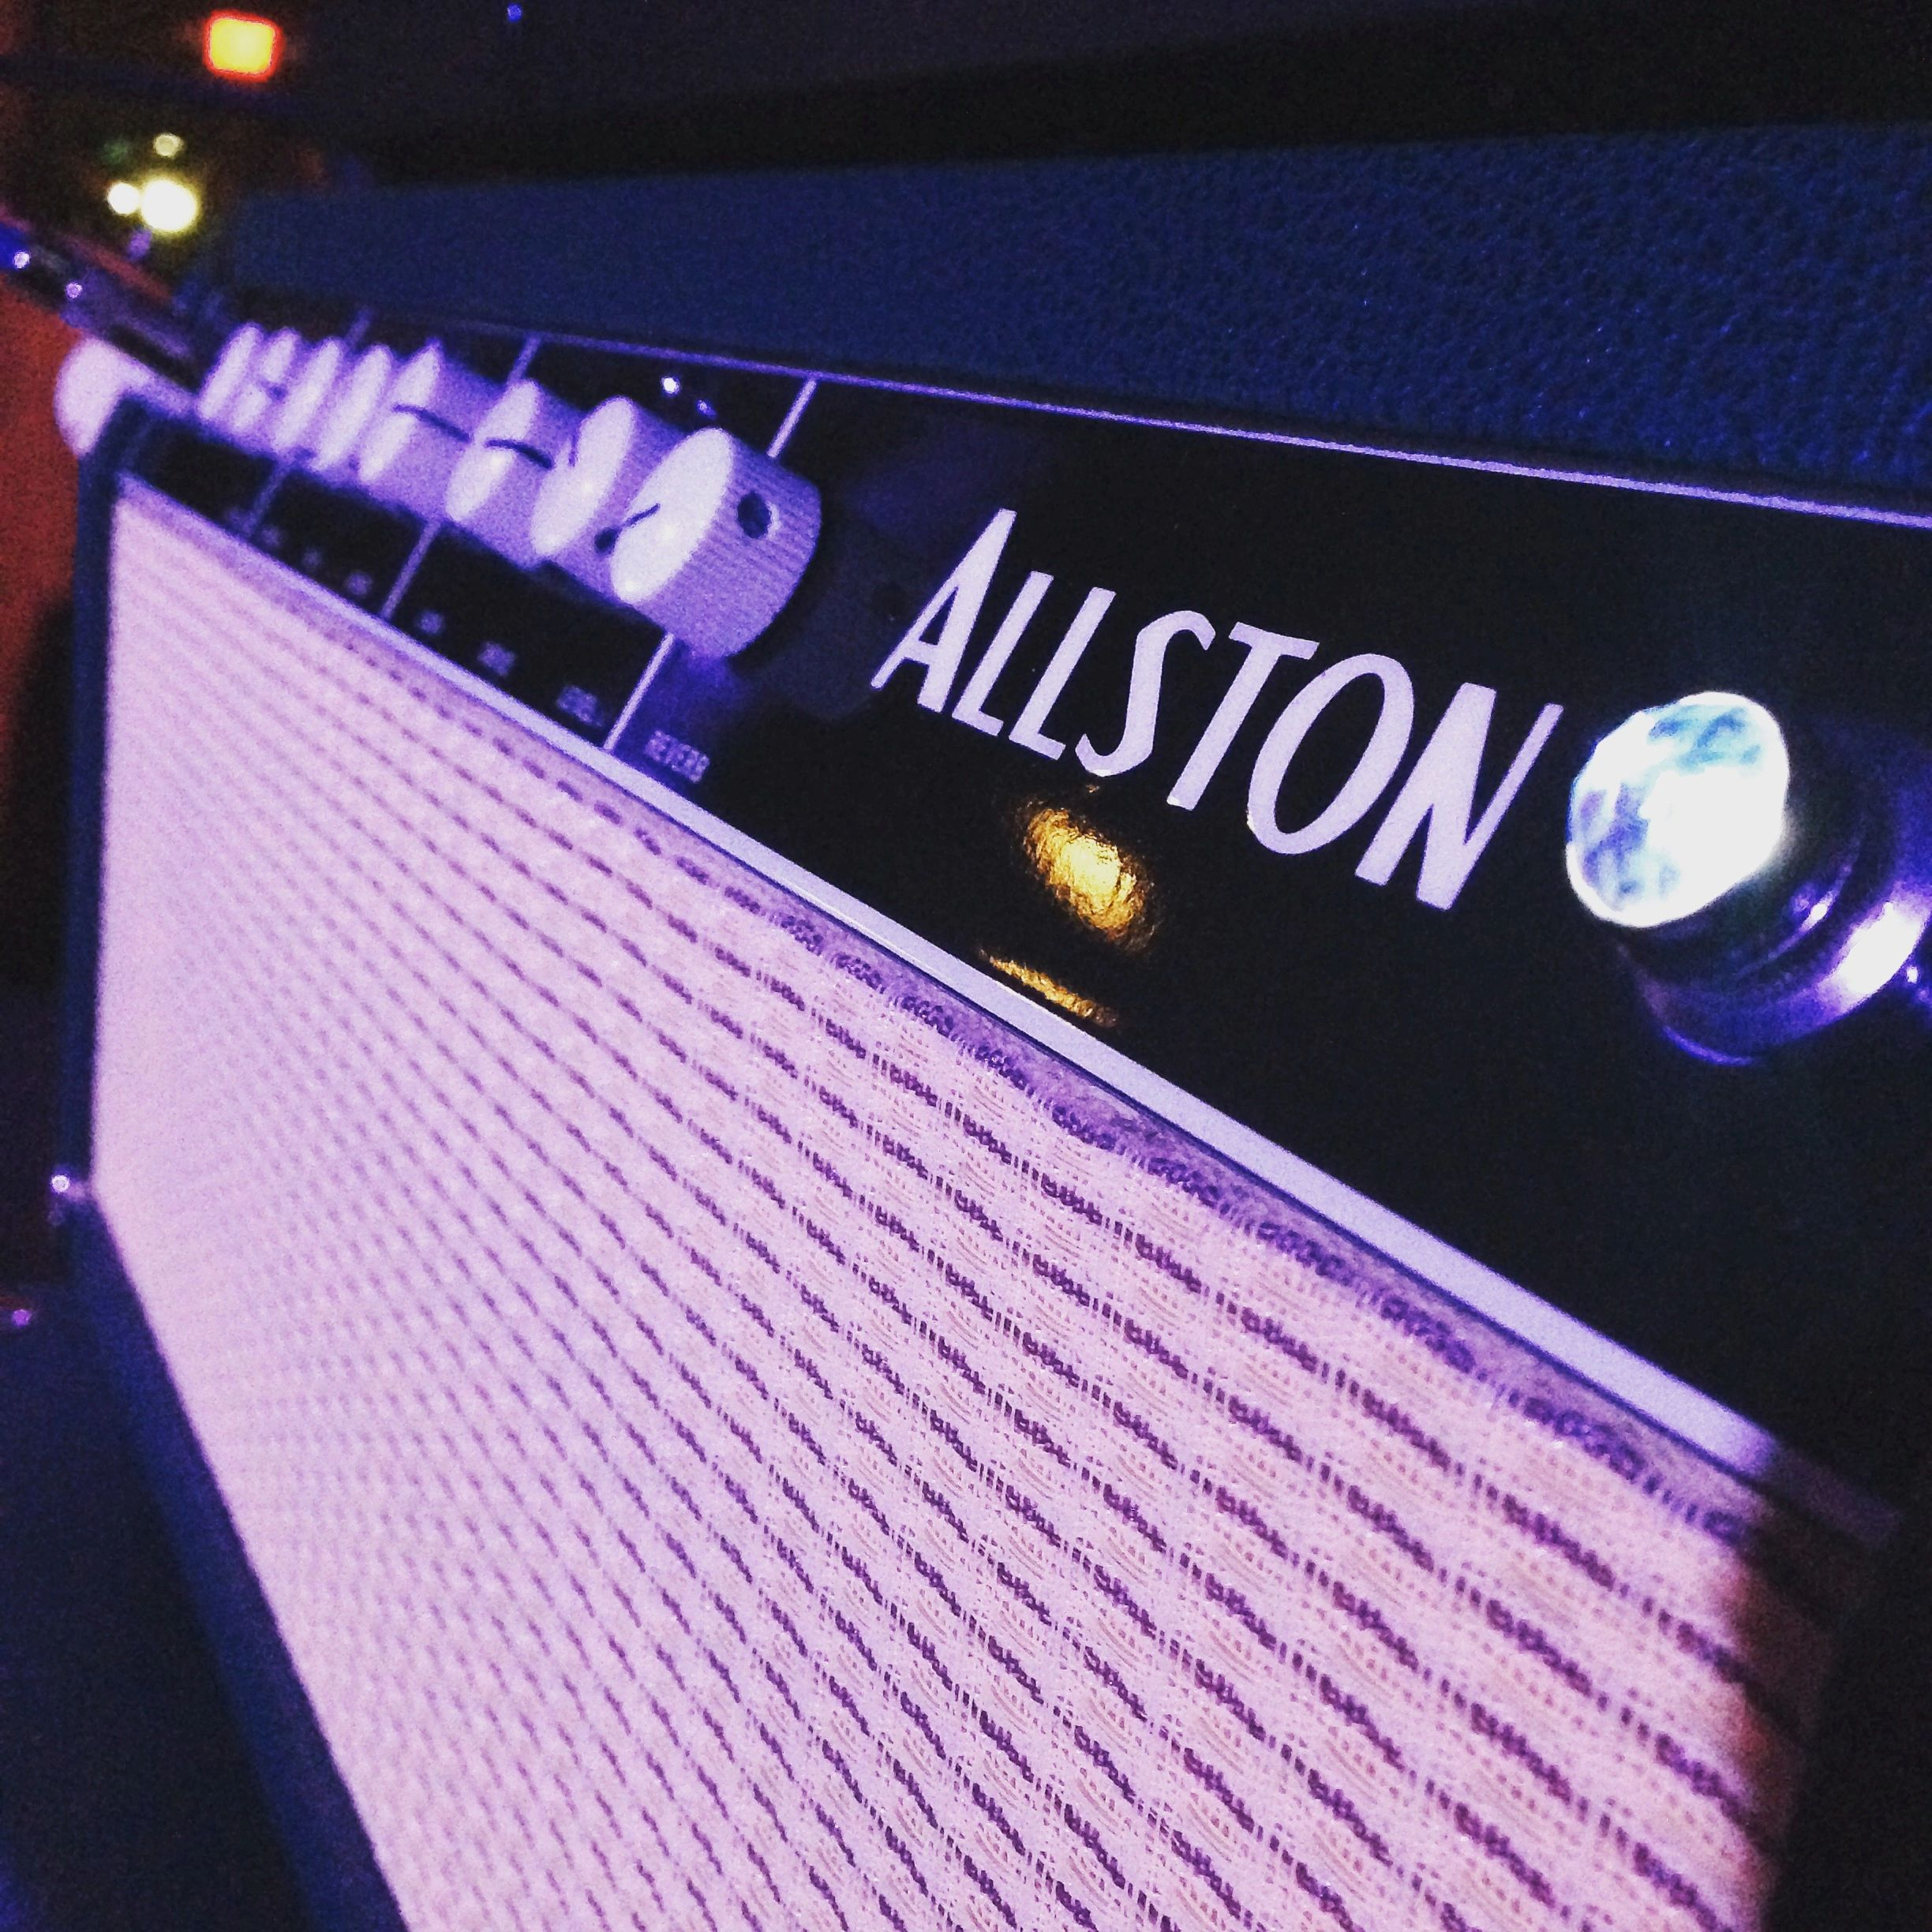 Perspective view of Sam's Allston AOC mark 1 head under blue stage lighting.